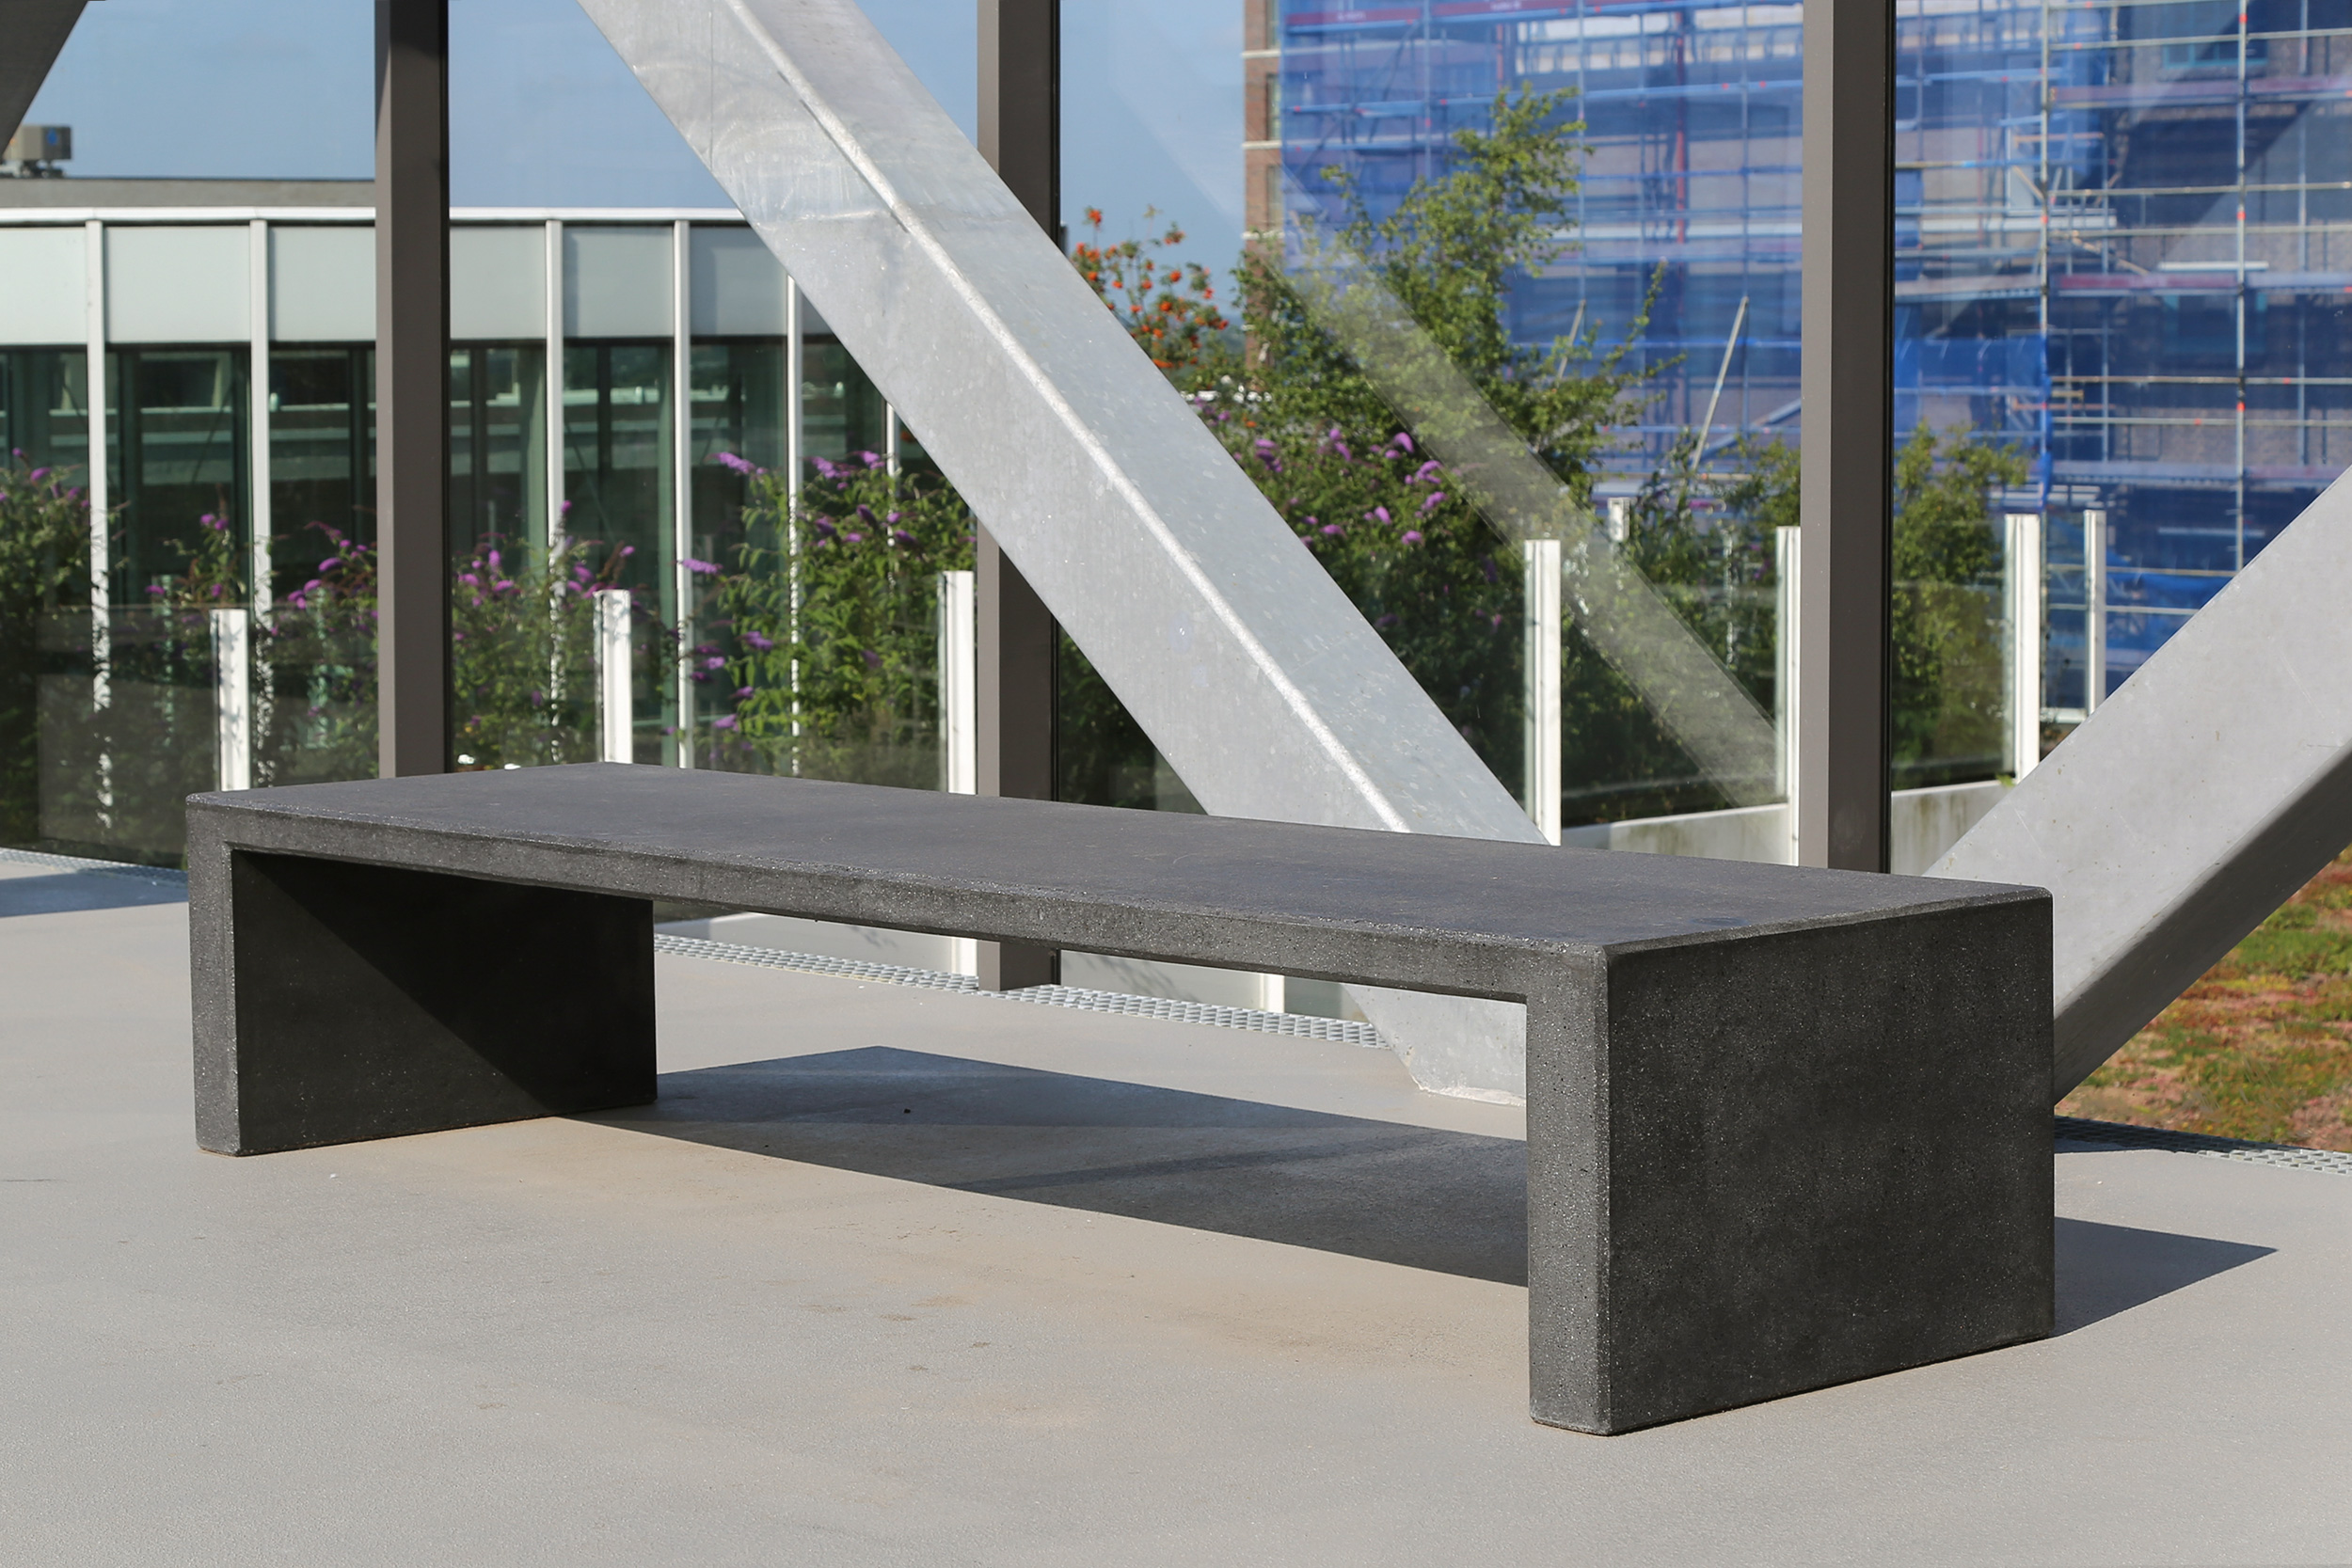 Public bench in black concrete at the Haasje Over in Eindhoven.